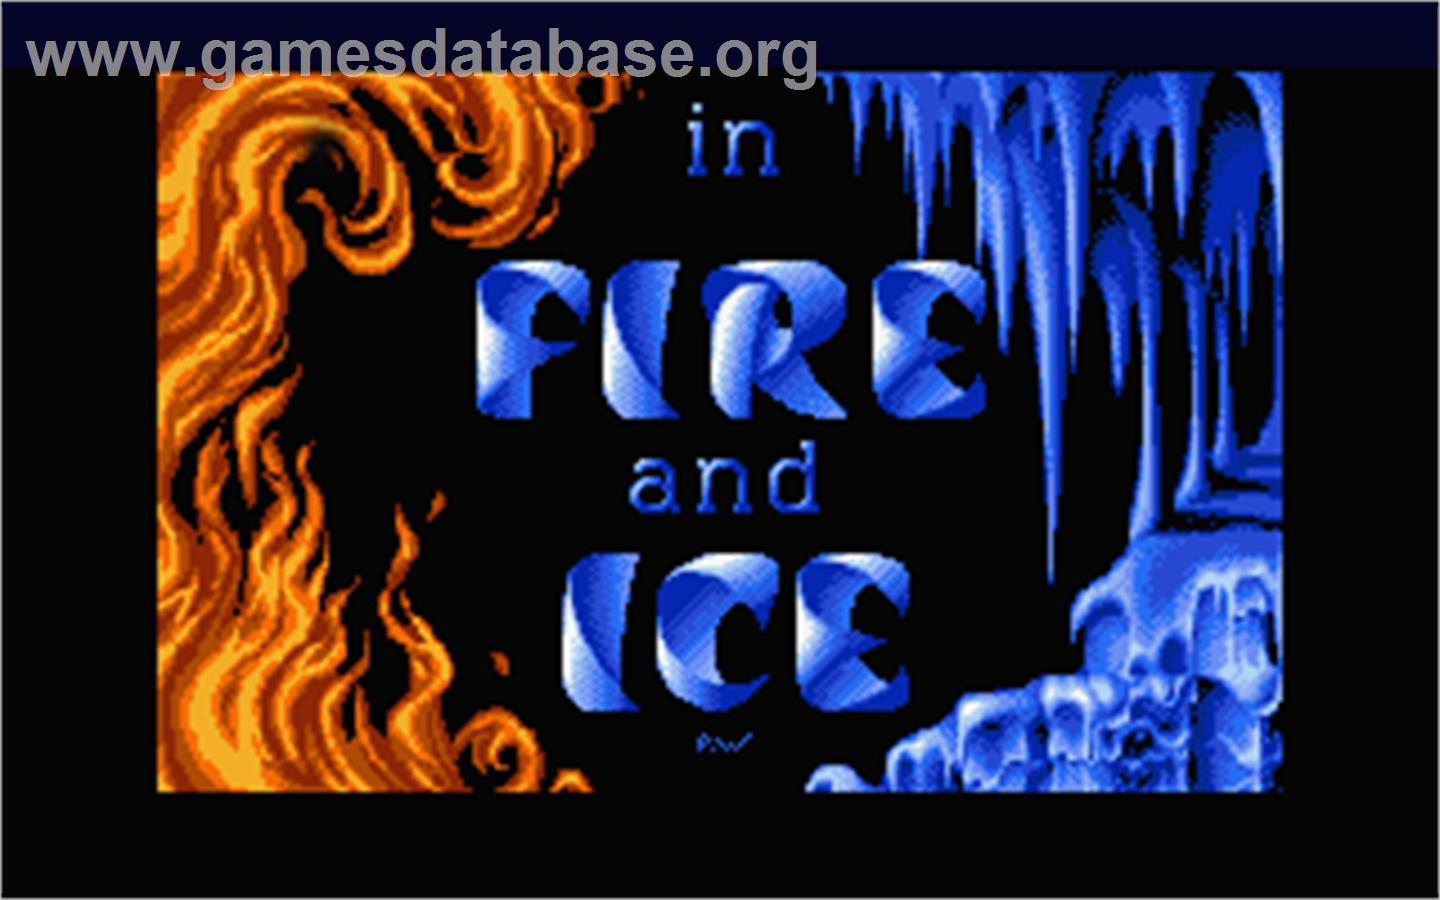 fire and ice atari st games database. Black Bedroom Furniture Sets. Home Design Ideas